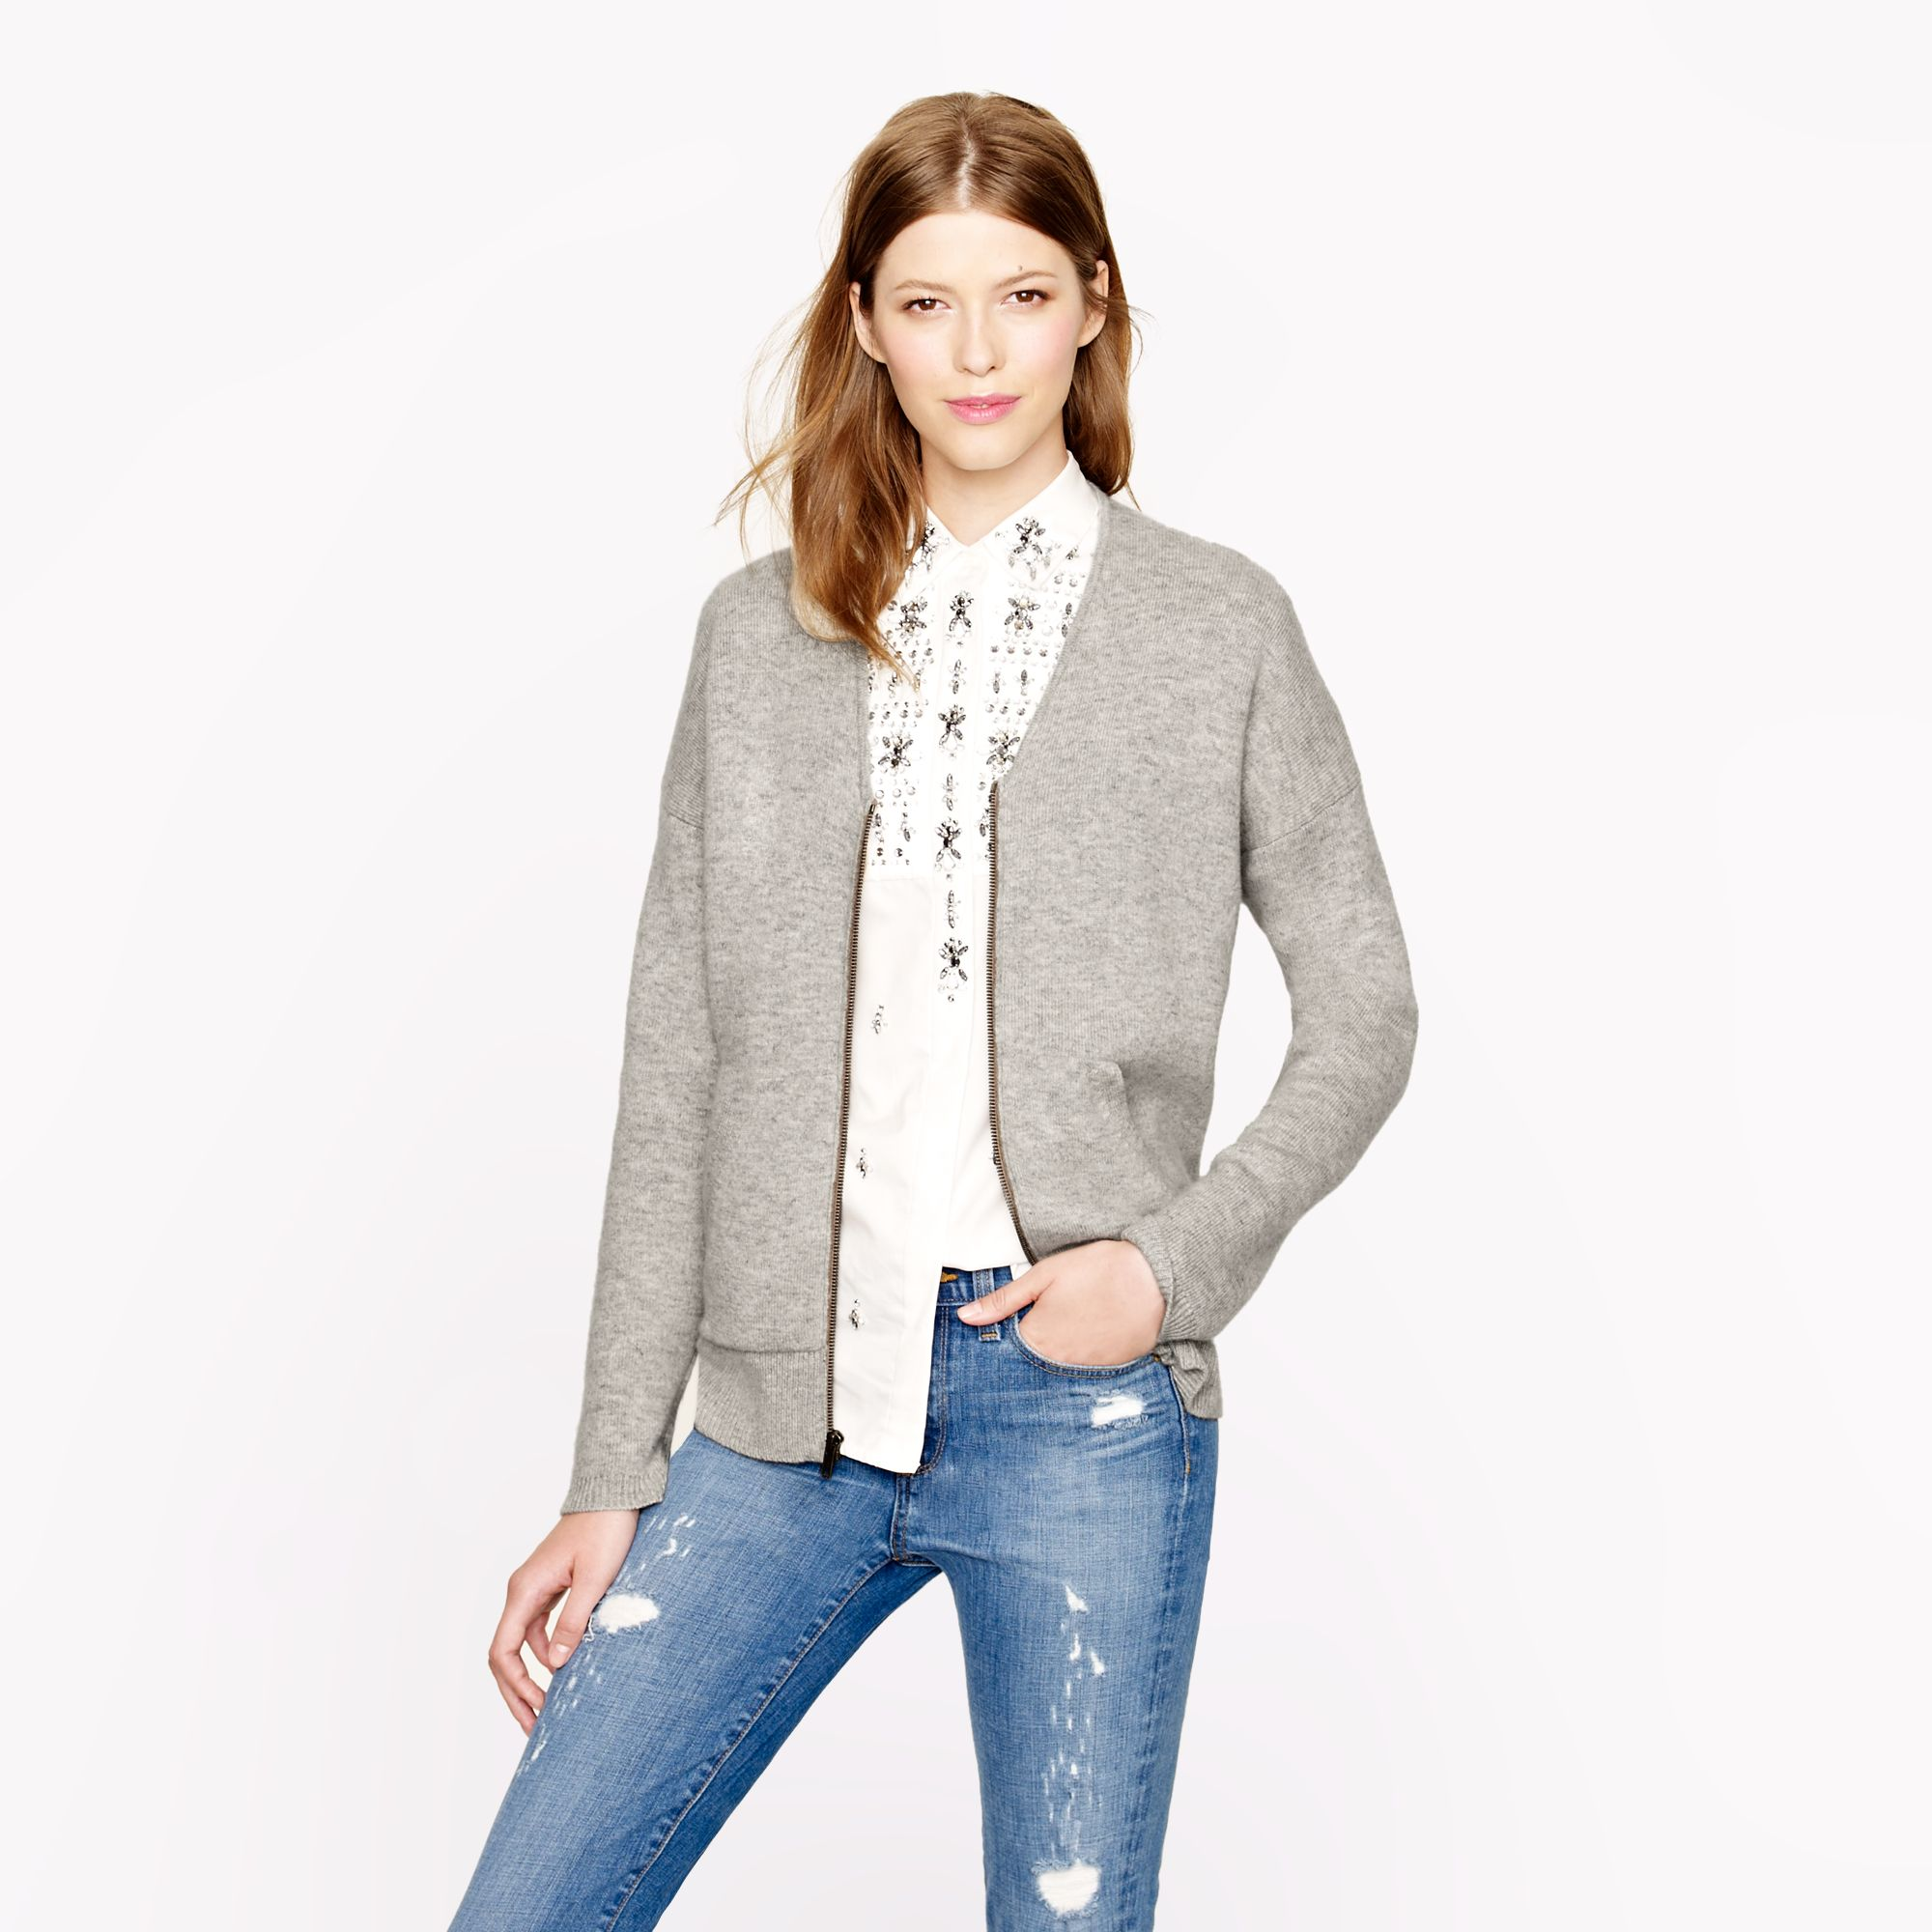 Jcrew Collection Bonded Cashmere Zip Sweater-Jacket In -9104